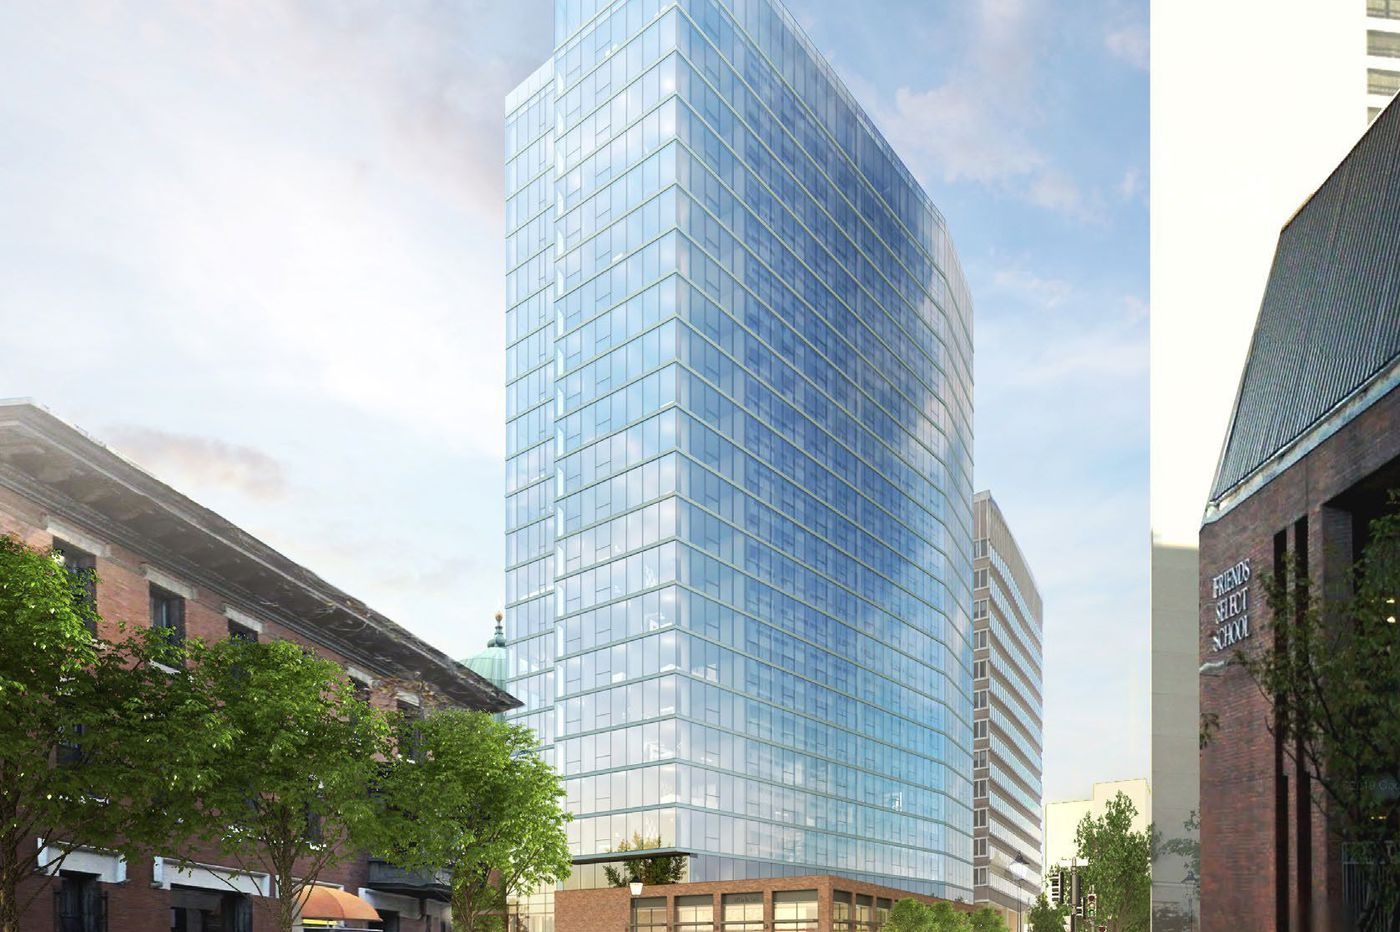 Conshohocken-Based Exeter Property Group to Develop 23-Story Residential Tower as Part of Center City Project